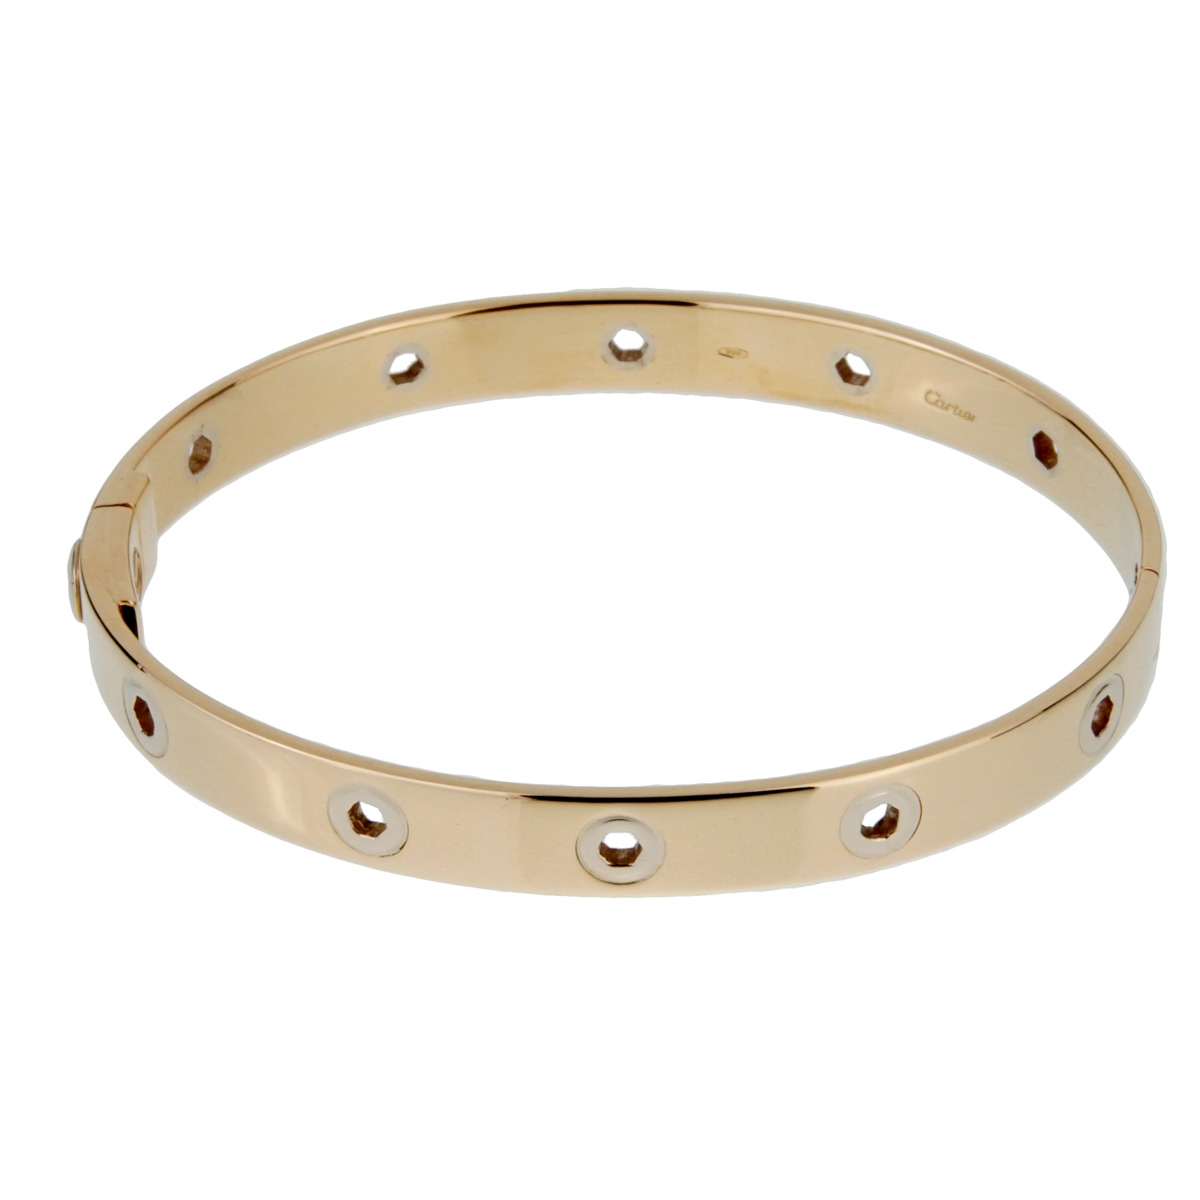 Cartier Vintage Love Series 18k Yellow Gold Bangle - Cartier Jewelry